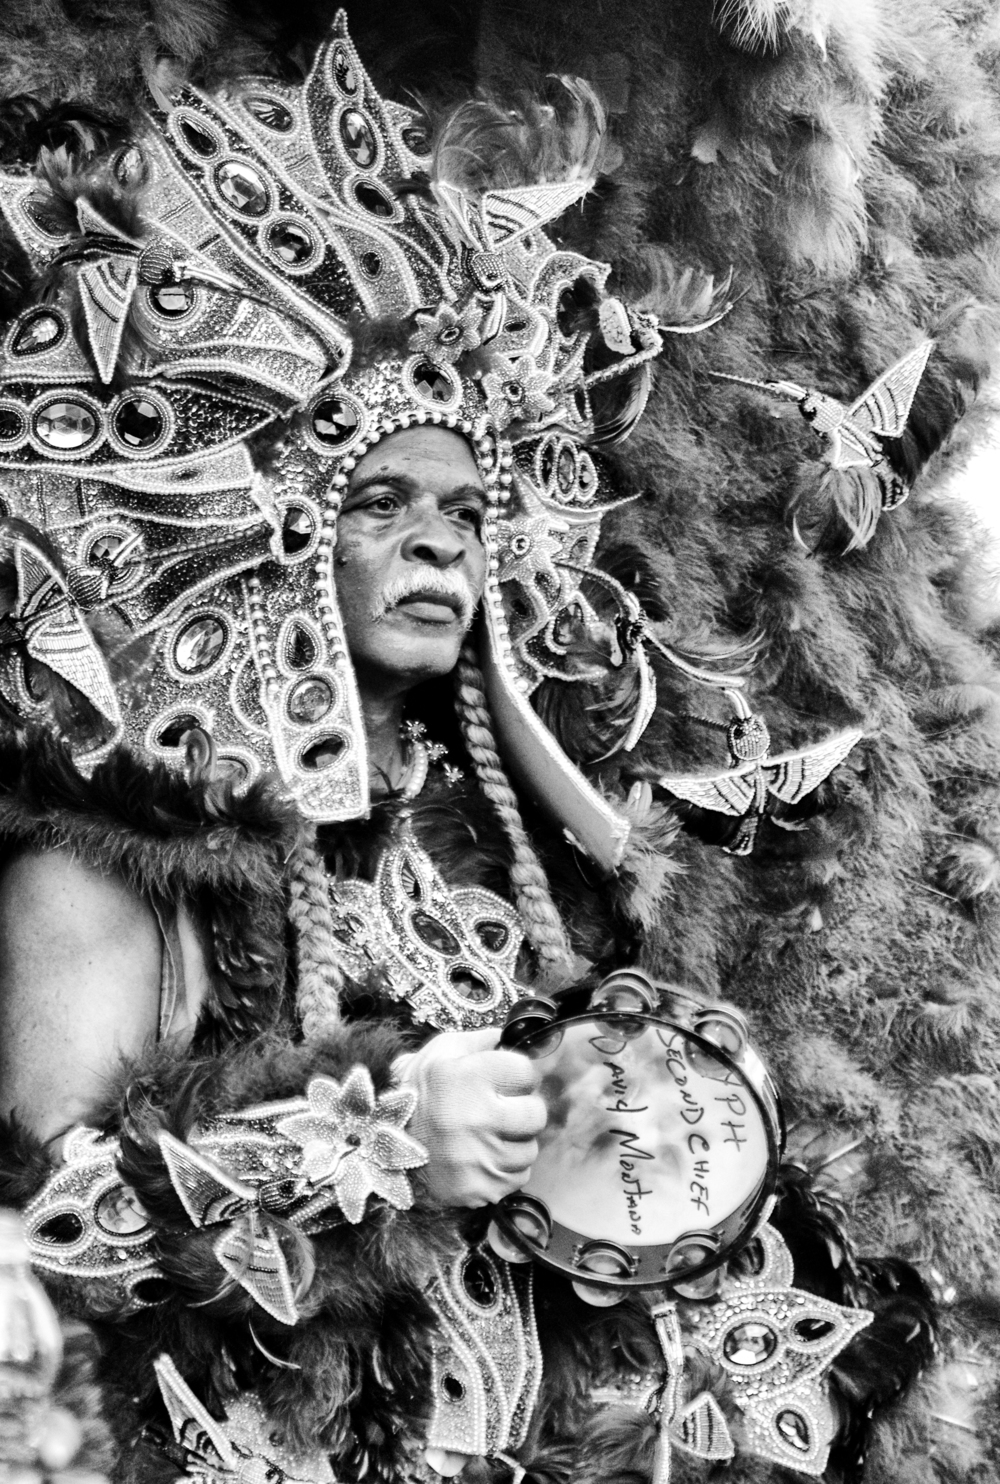 Big Chief, New Orleans, 2012.jpg